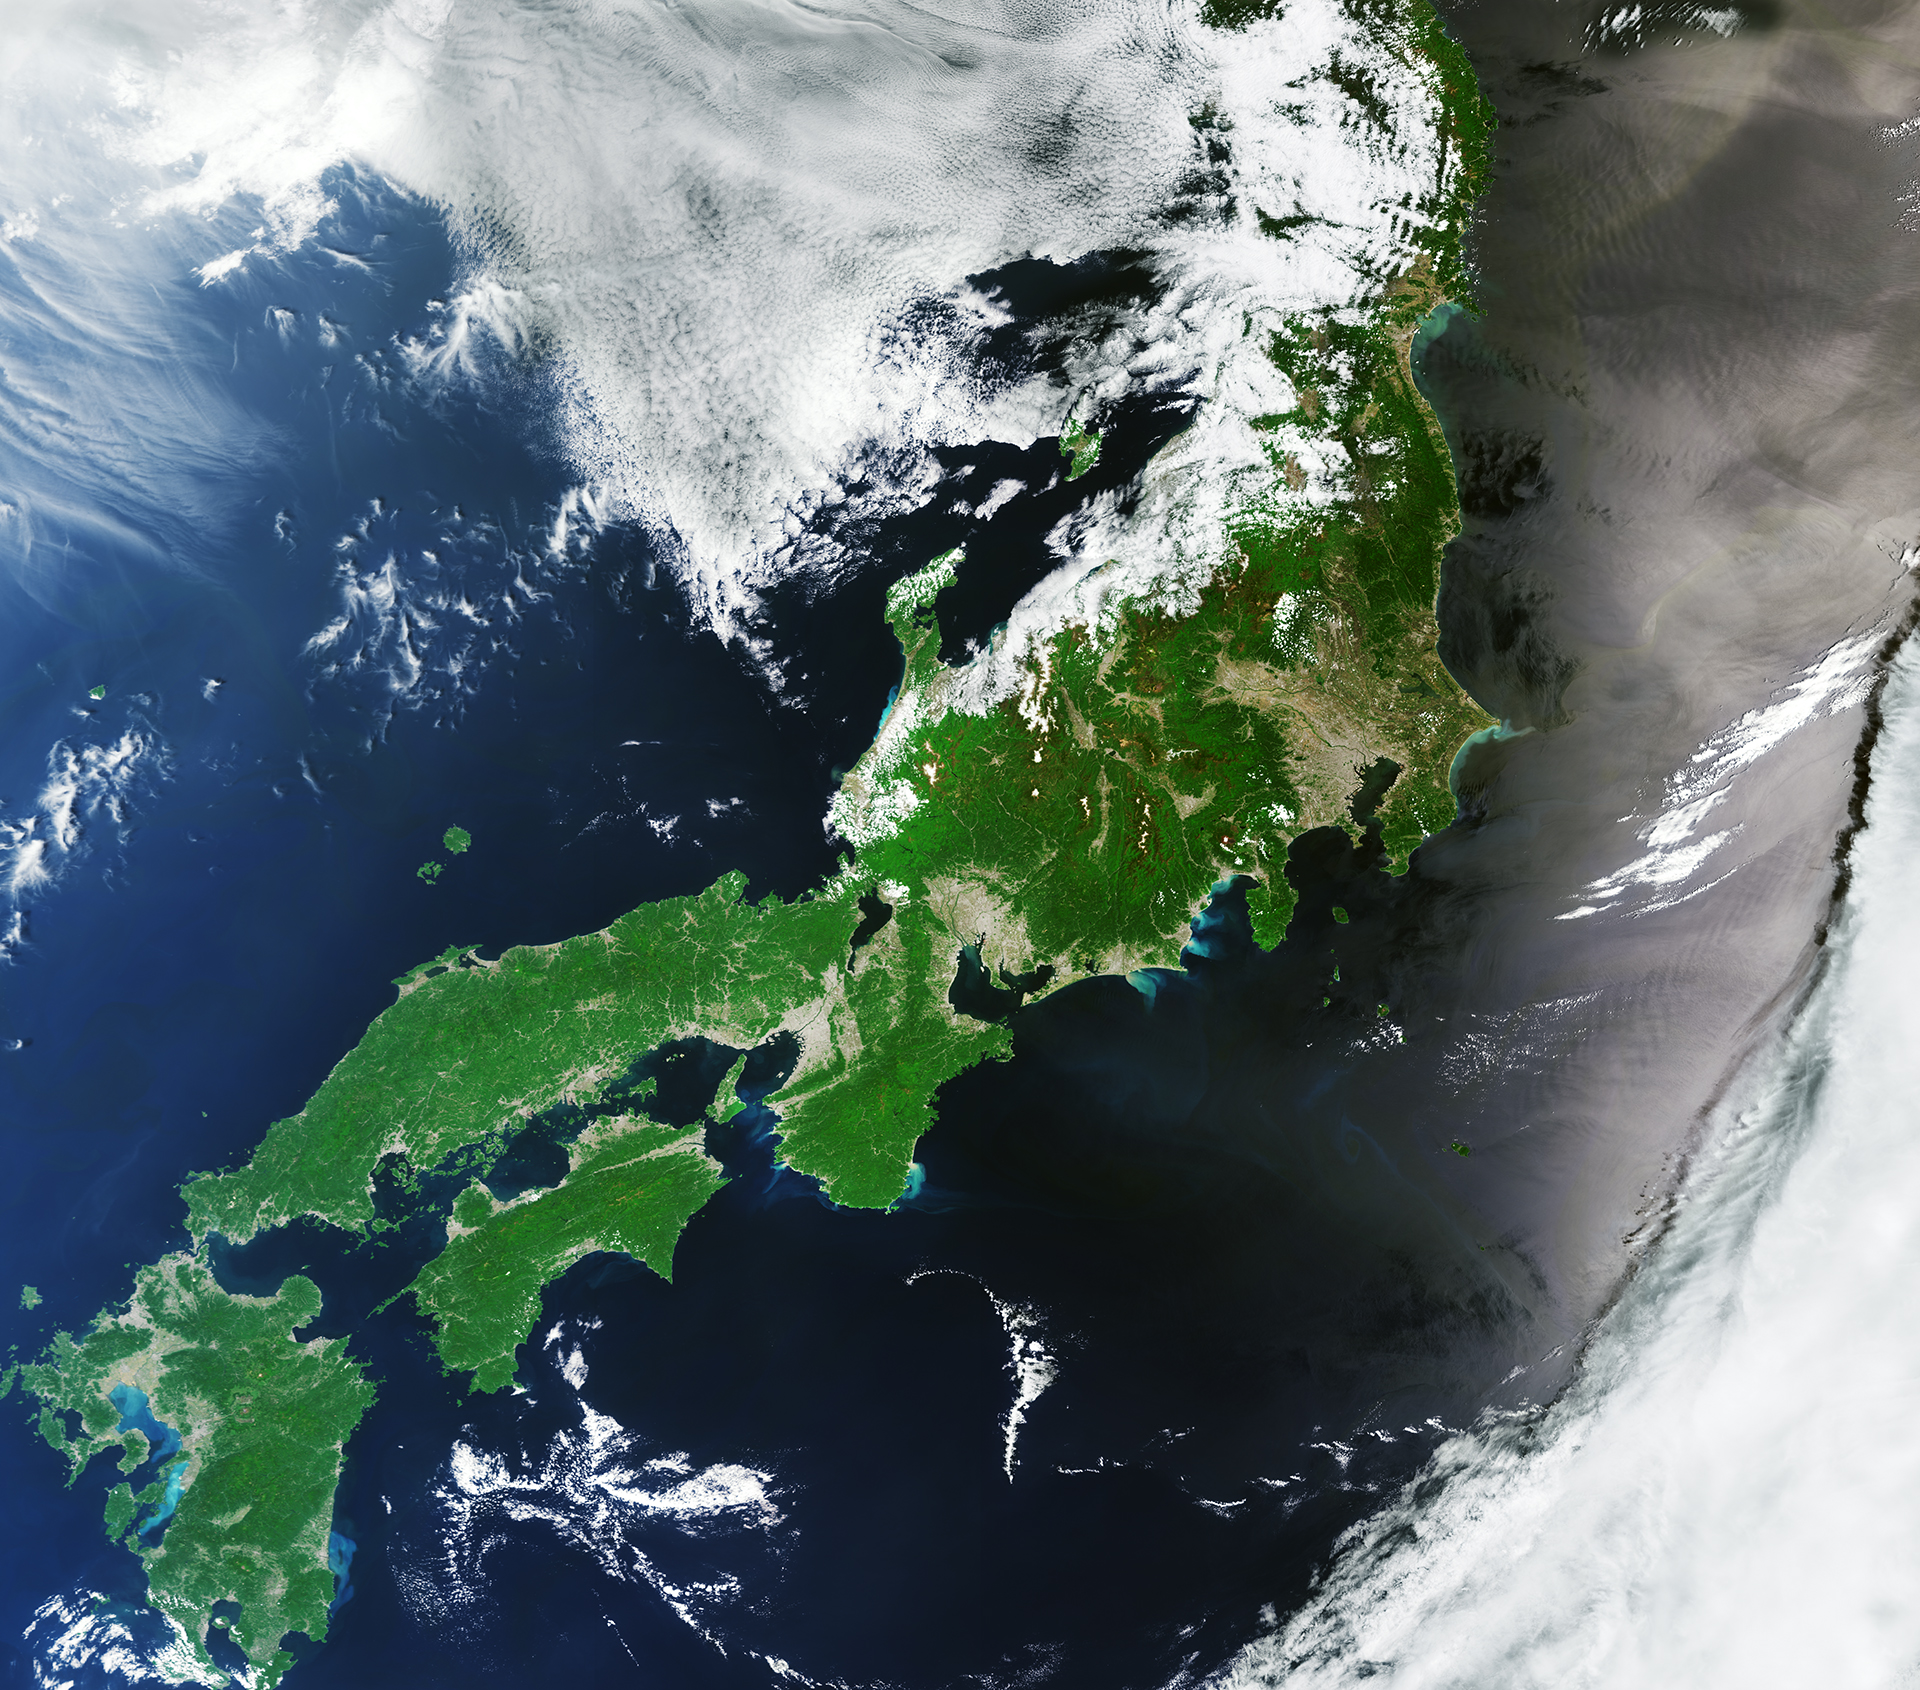 Space in Images - 2016 - 11 - Japan